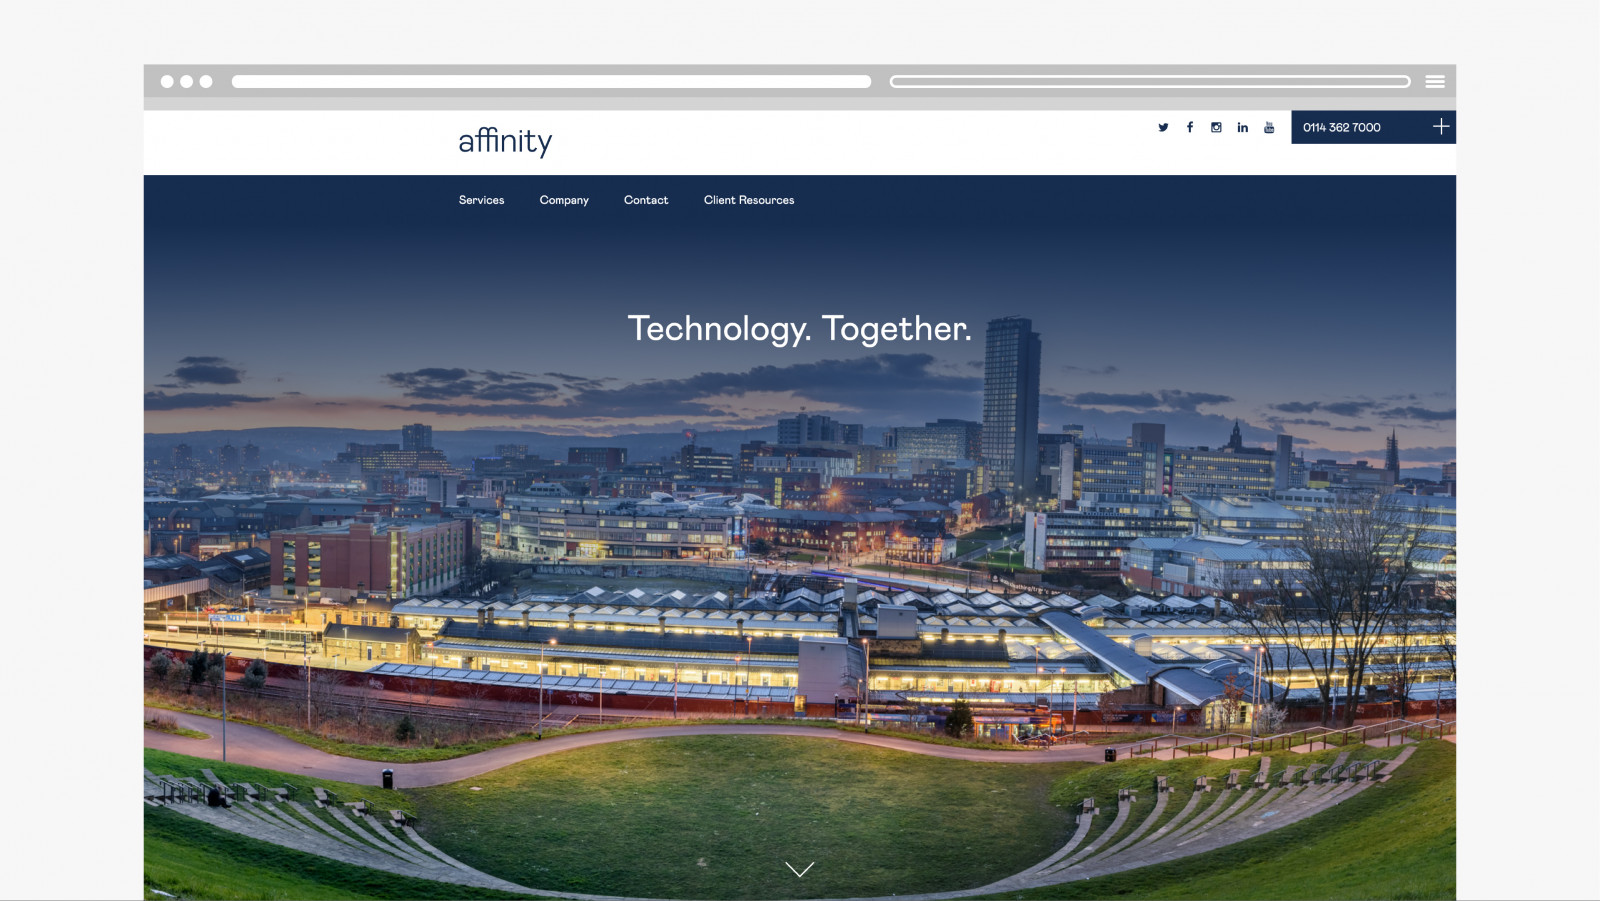 image for Affinity IT project